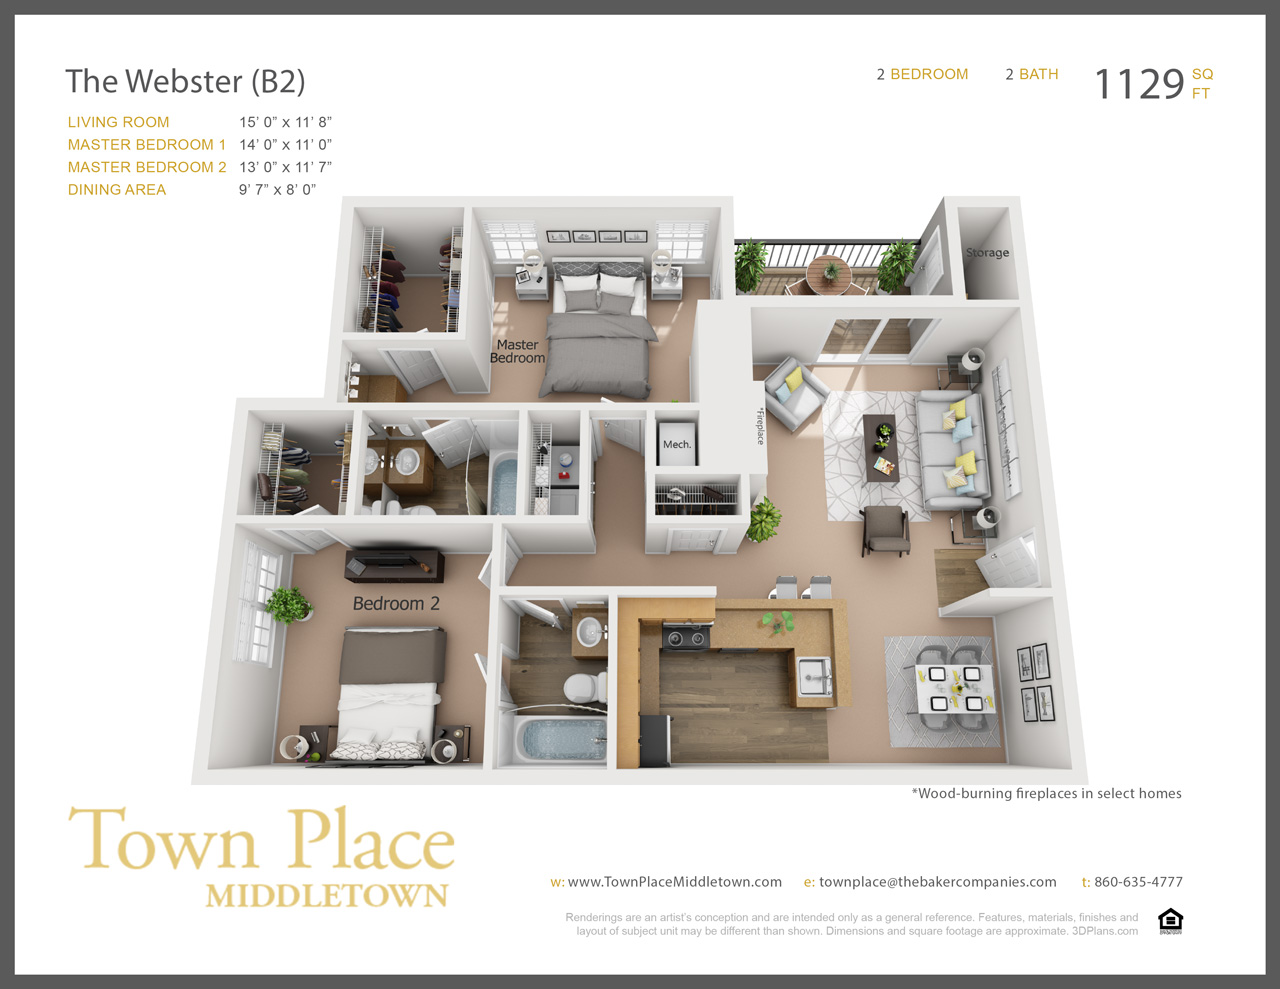 Town-Place-Middletown_The-Webster.jpg